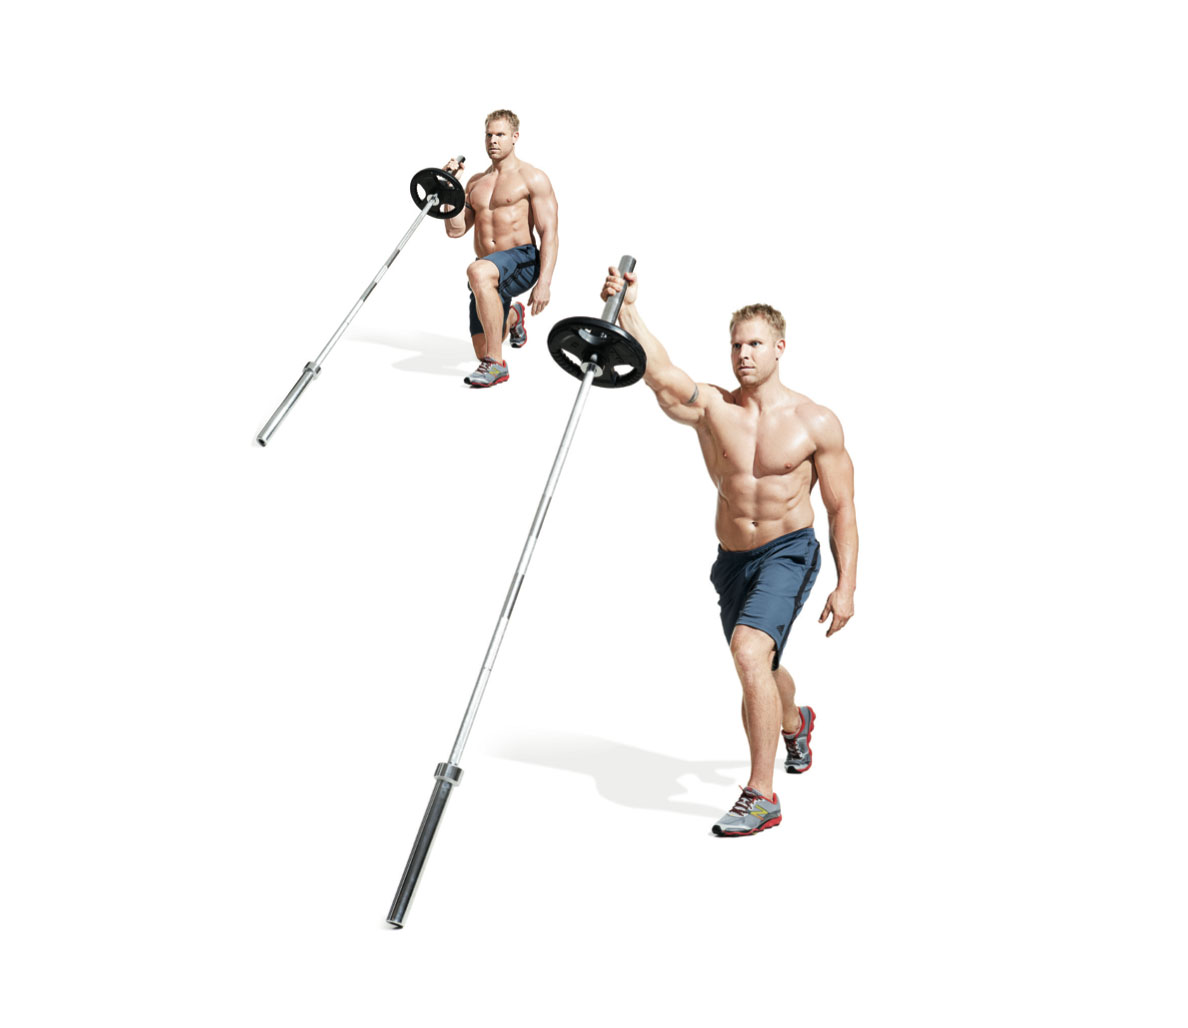 The Best Barbell Workout